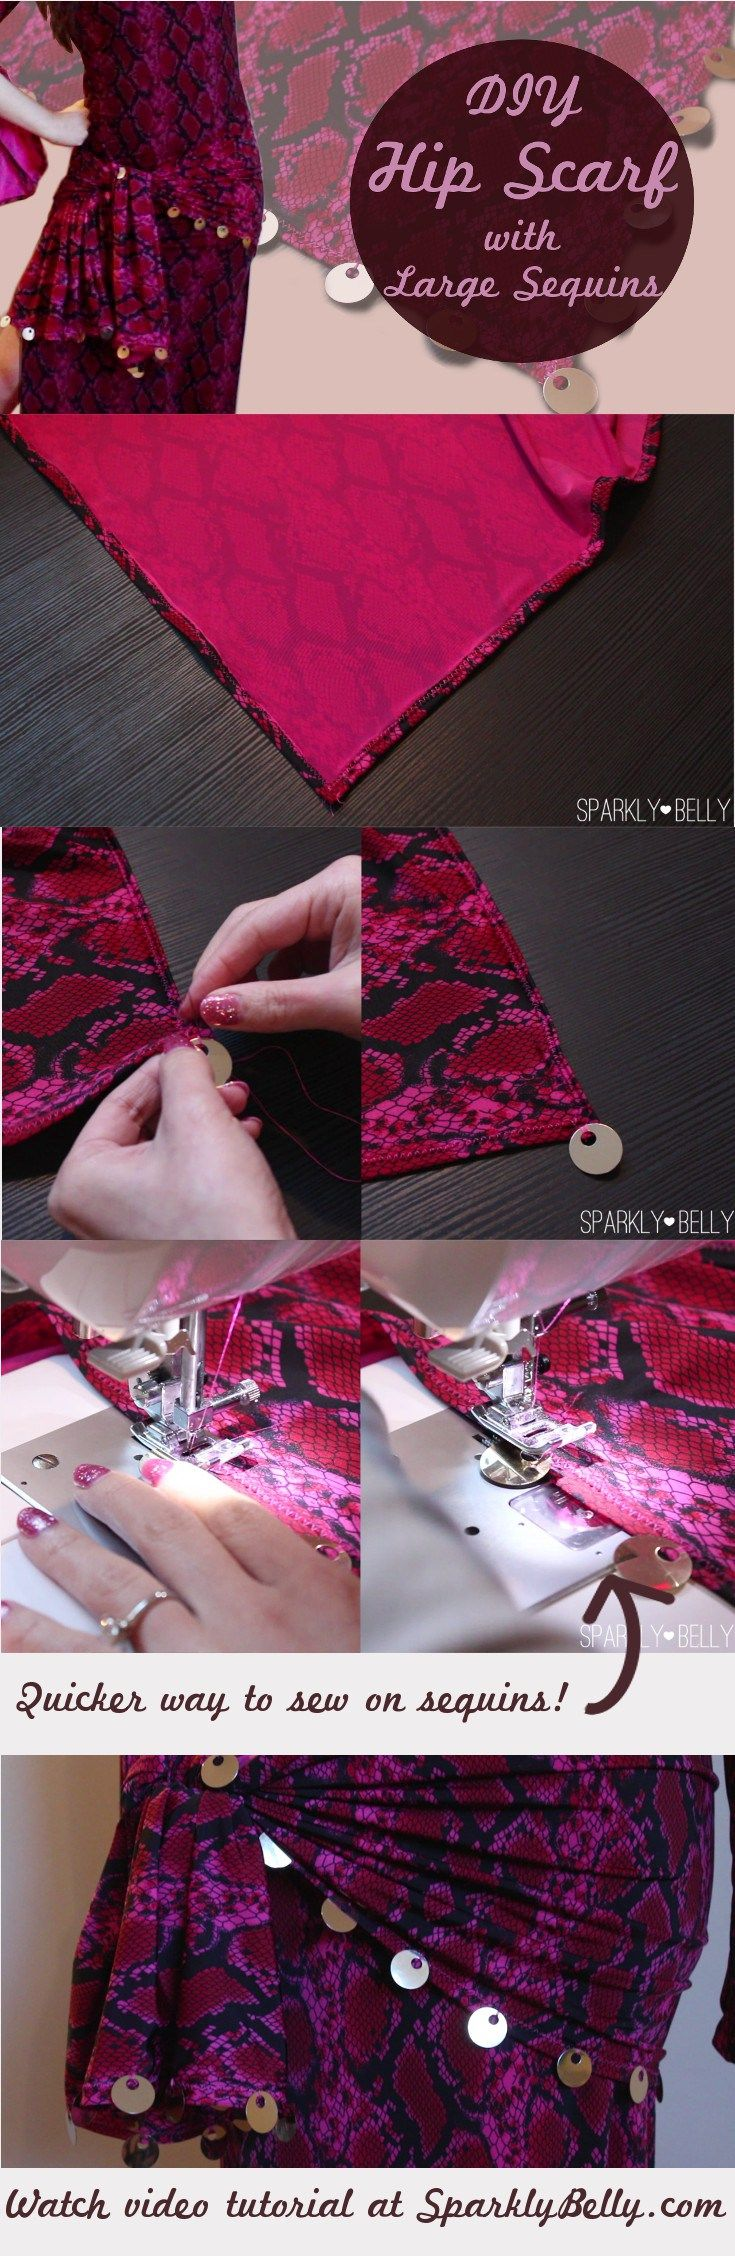 How to make your own hip scarf with sequins. Time saving tip!